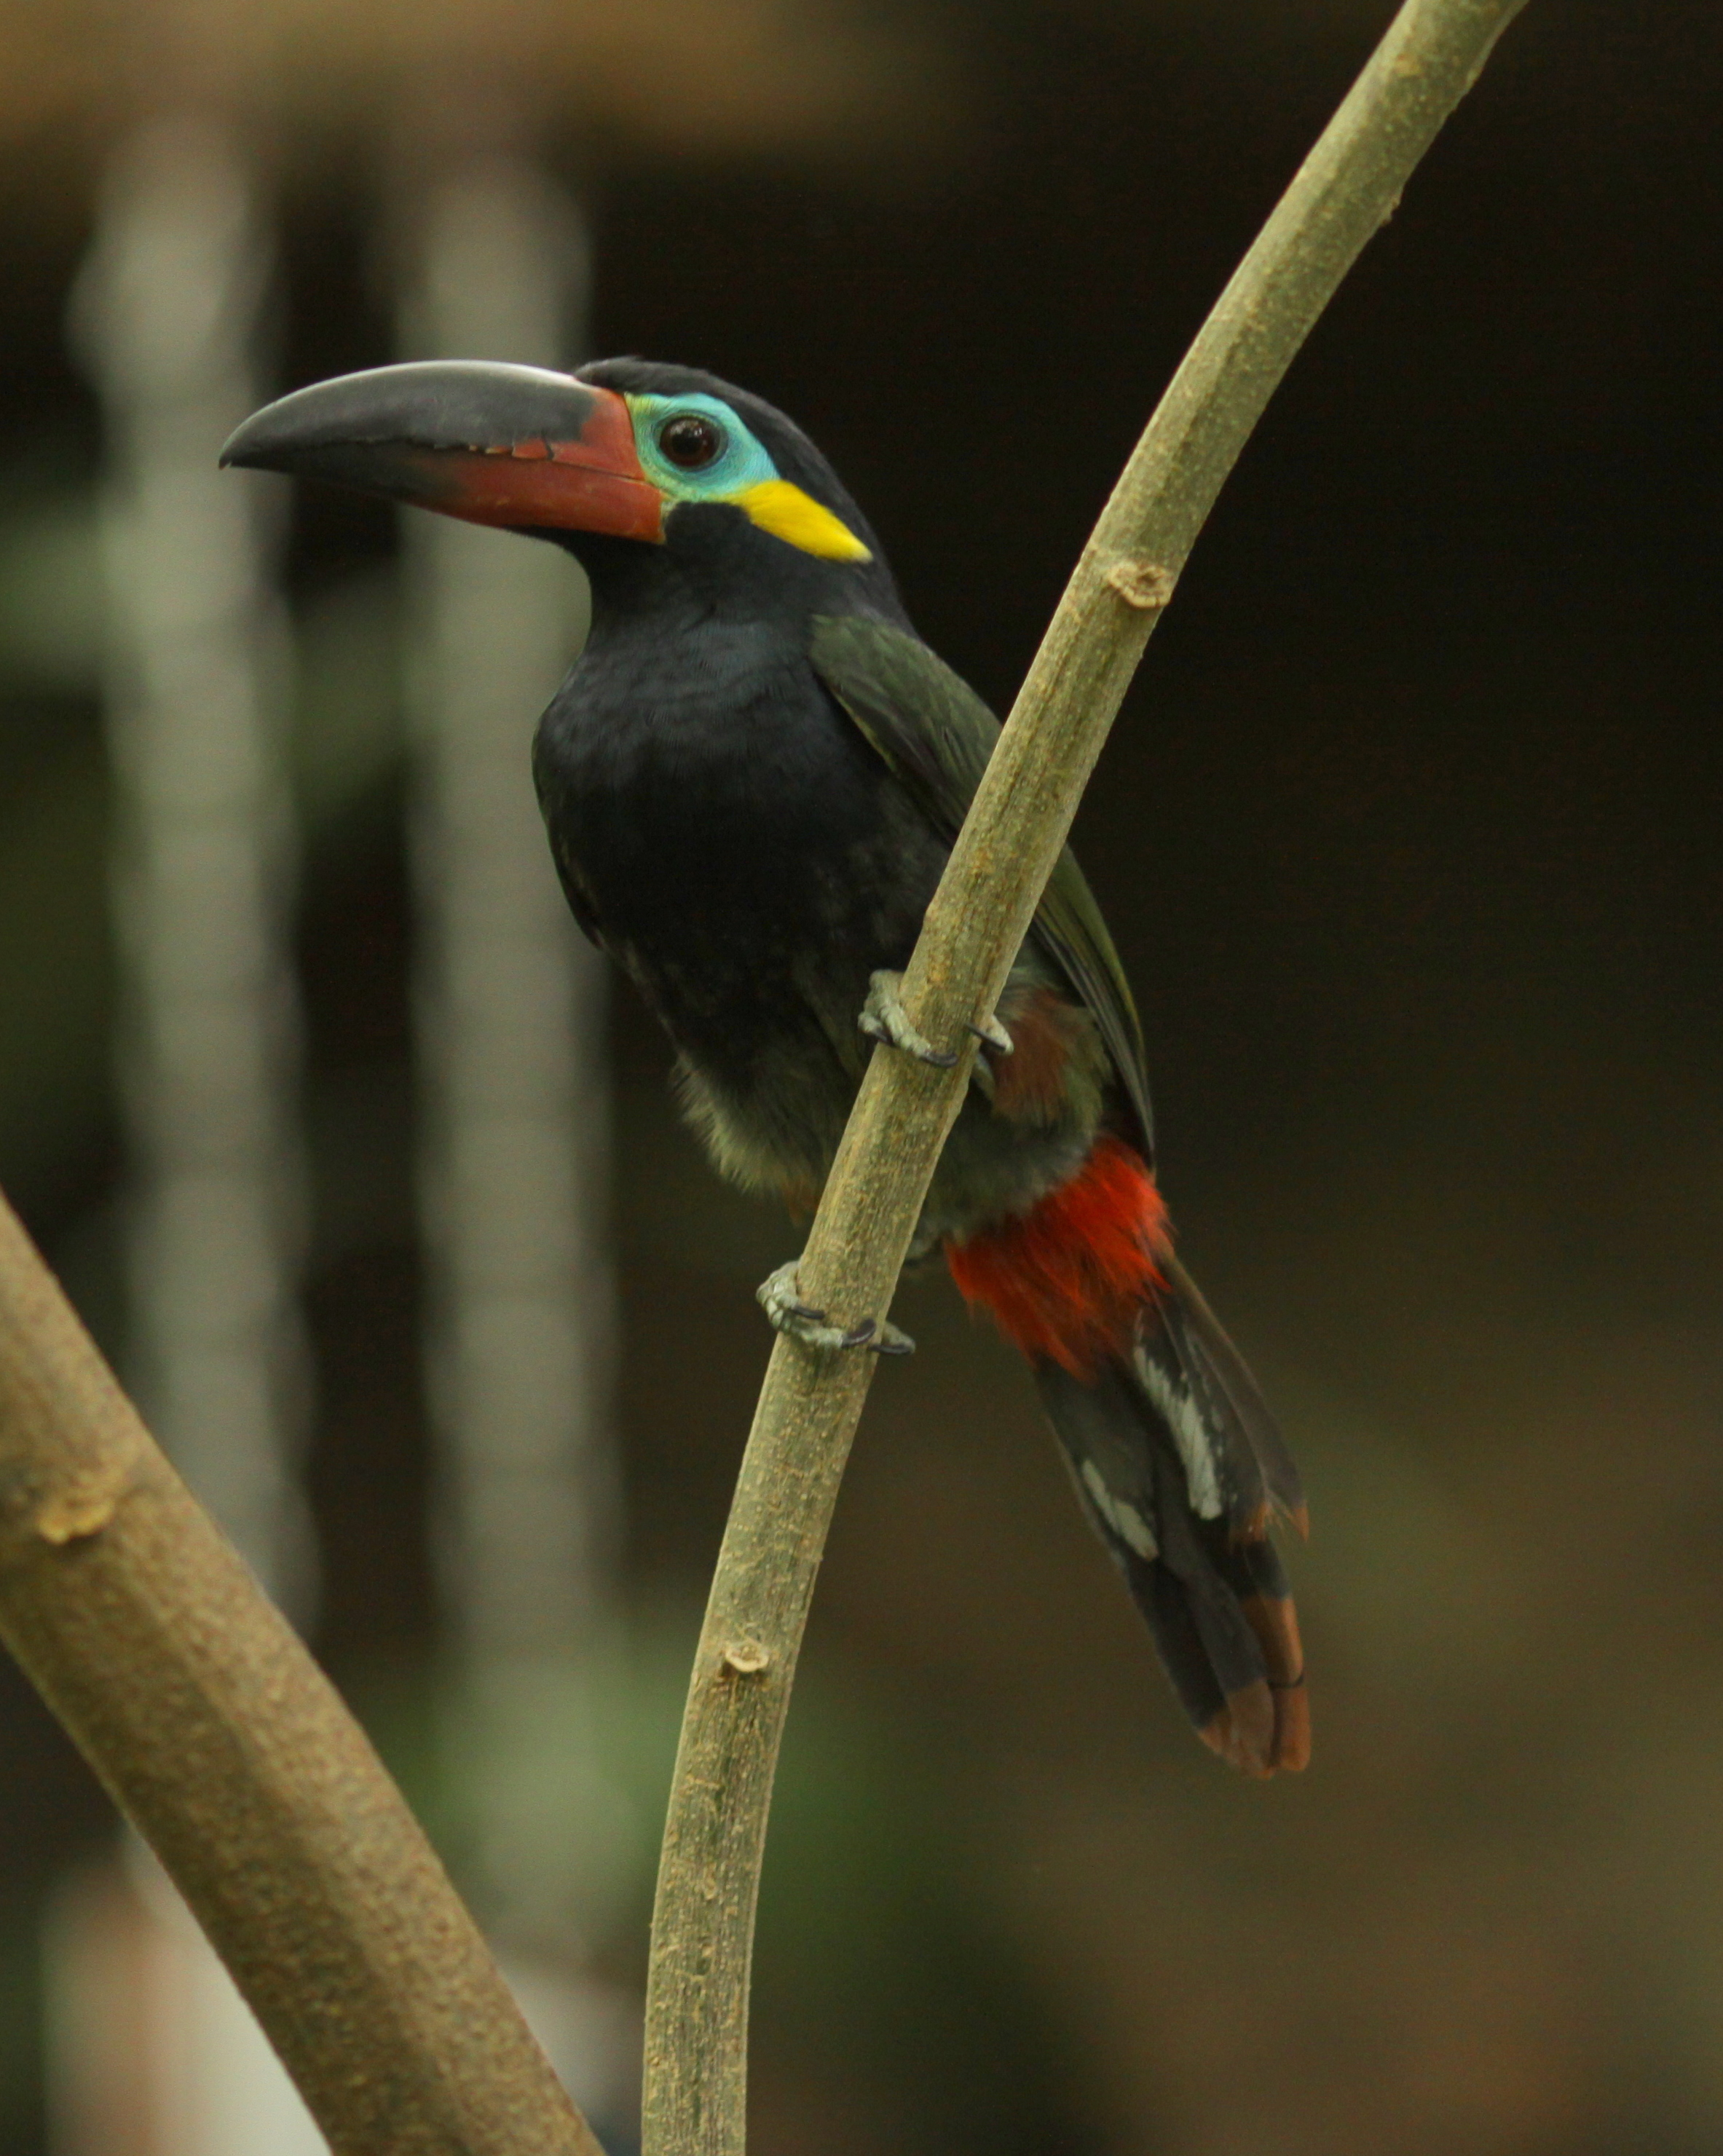 https://upload.wikimedia.org/wikipedia/commons/5/5a/Guianan_Toucanet_-Dallas_World_Aquarium-male-8a.jpg